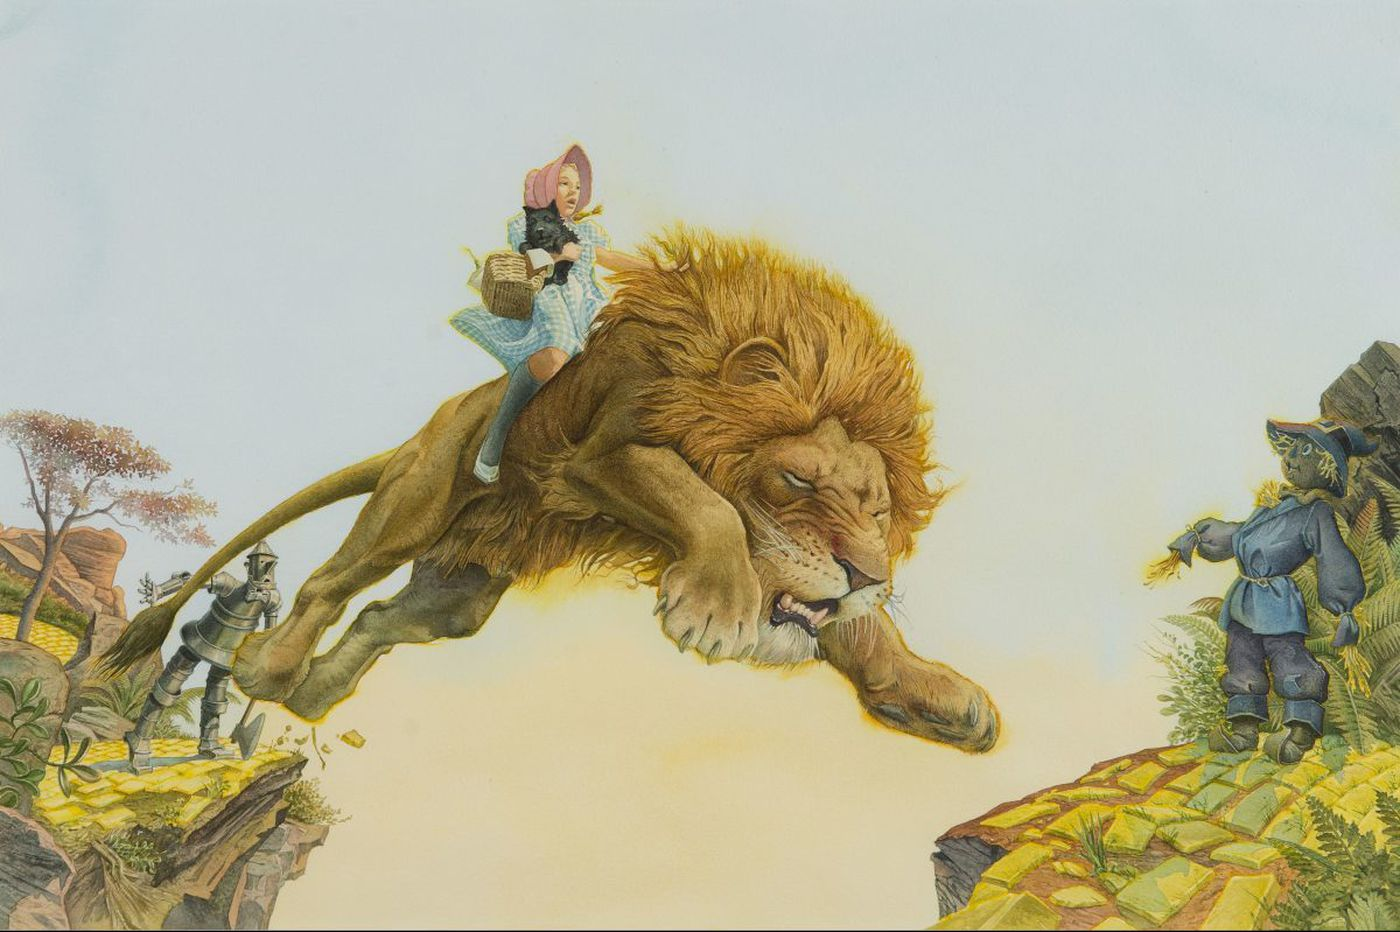 Woodmere's Charles Santore show is a trove of illustration, from Columbo to Cowardly Lion